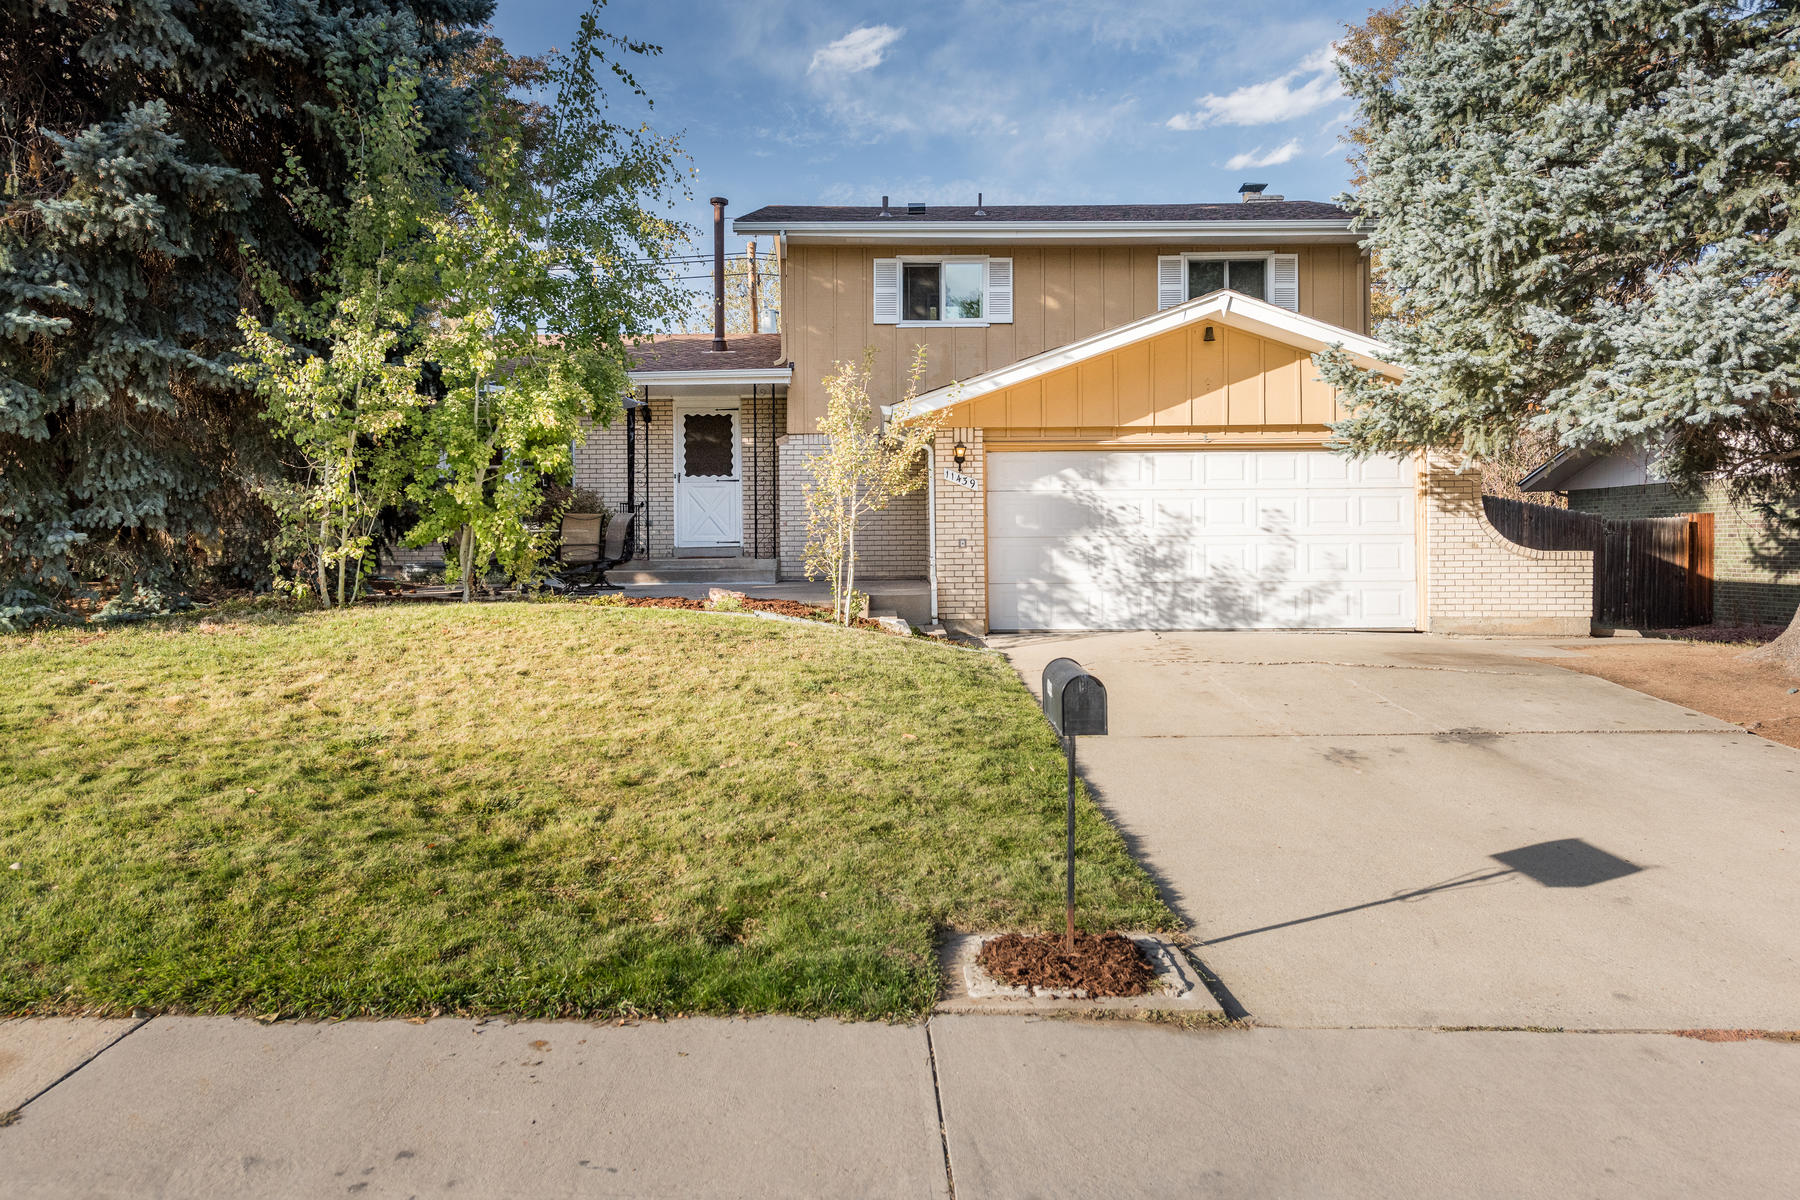 Single Family Homes for Sale at Wonderful, Updated Arvada Home 11439 W 59th Pl Arvada, Colorado 80004 United States